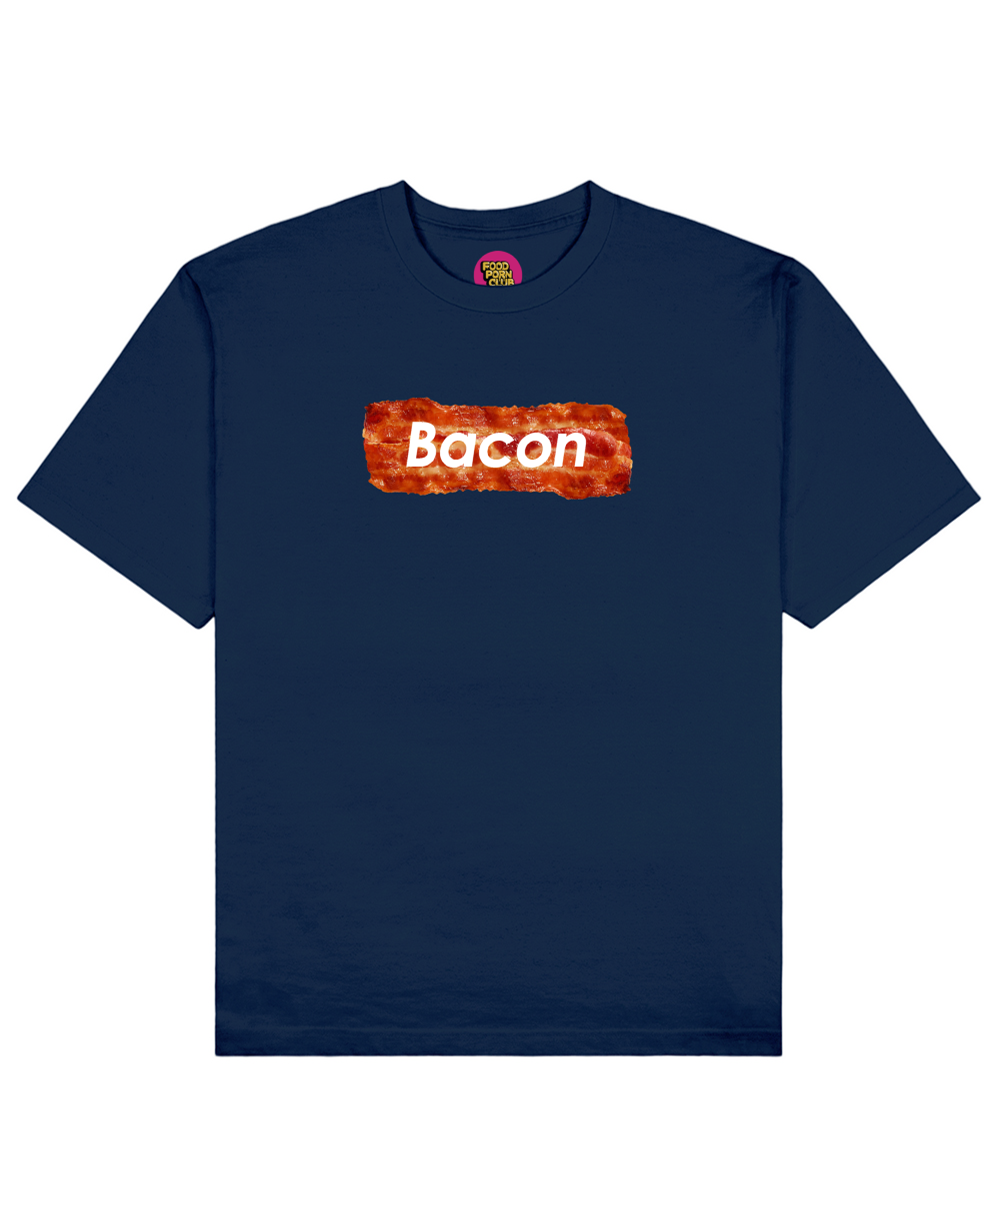 Bacon Print T-Shirt in Navy - T-Shirts - FOOD PORN CLUB - BRANMA